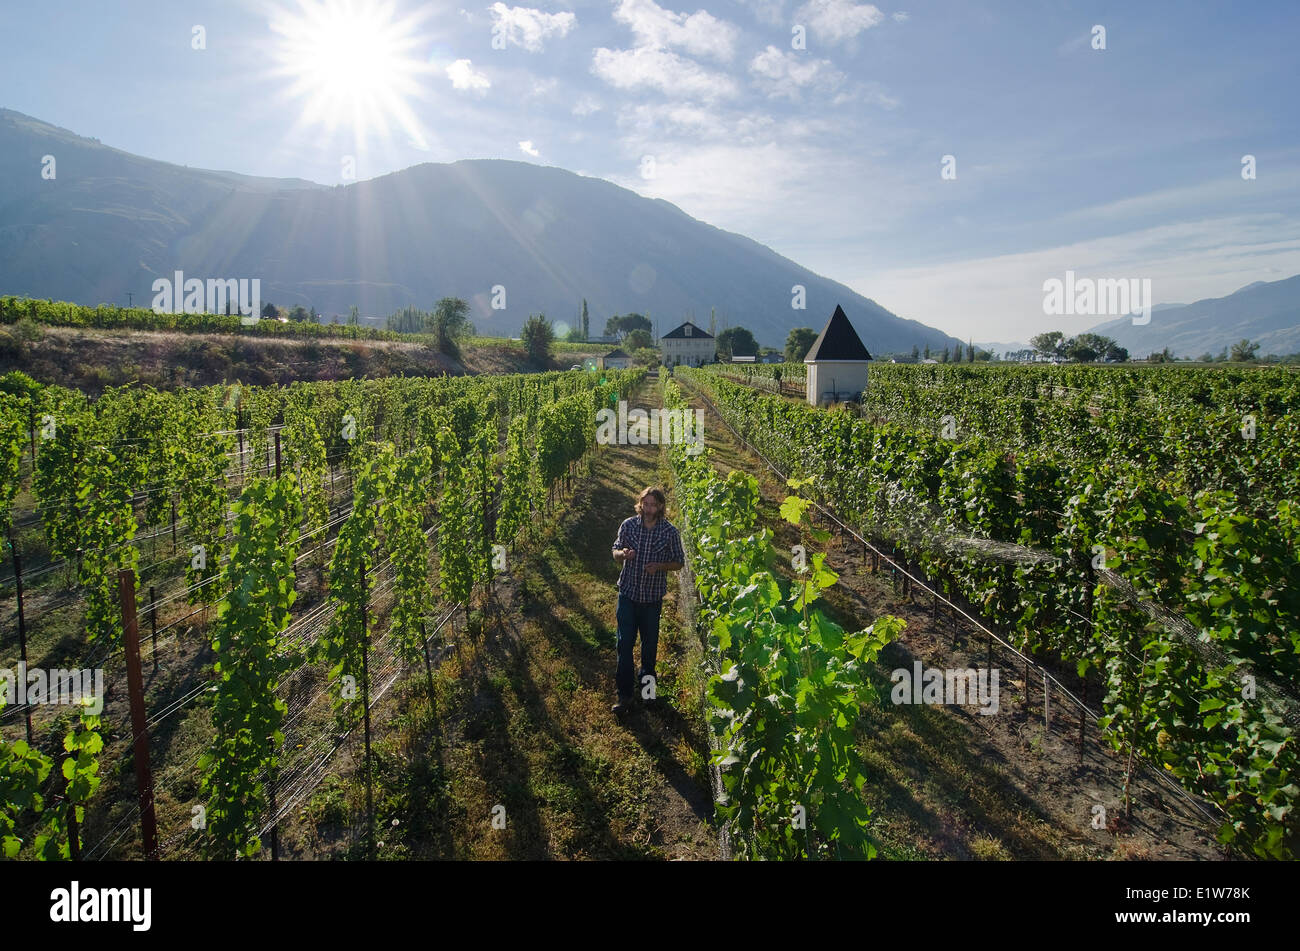 Winemaker samples the grapes at the vineyards Eau Vivre winery in Keremeos in the Similkameen region British Columbia - Stock Image